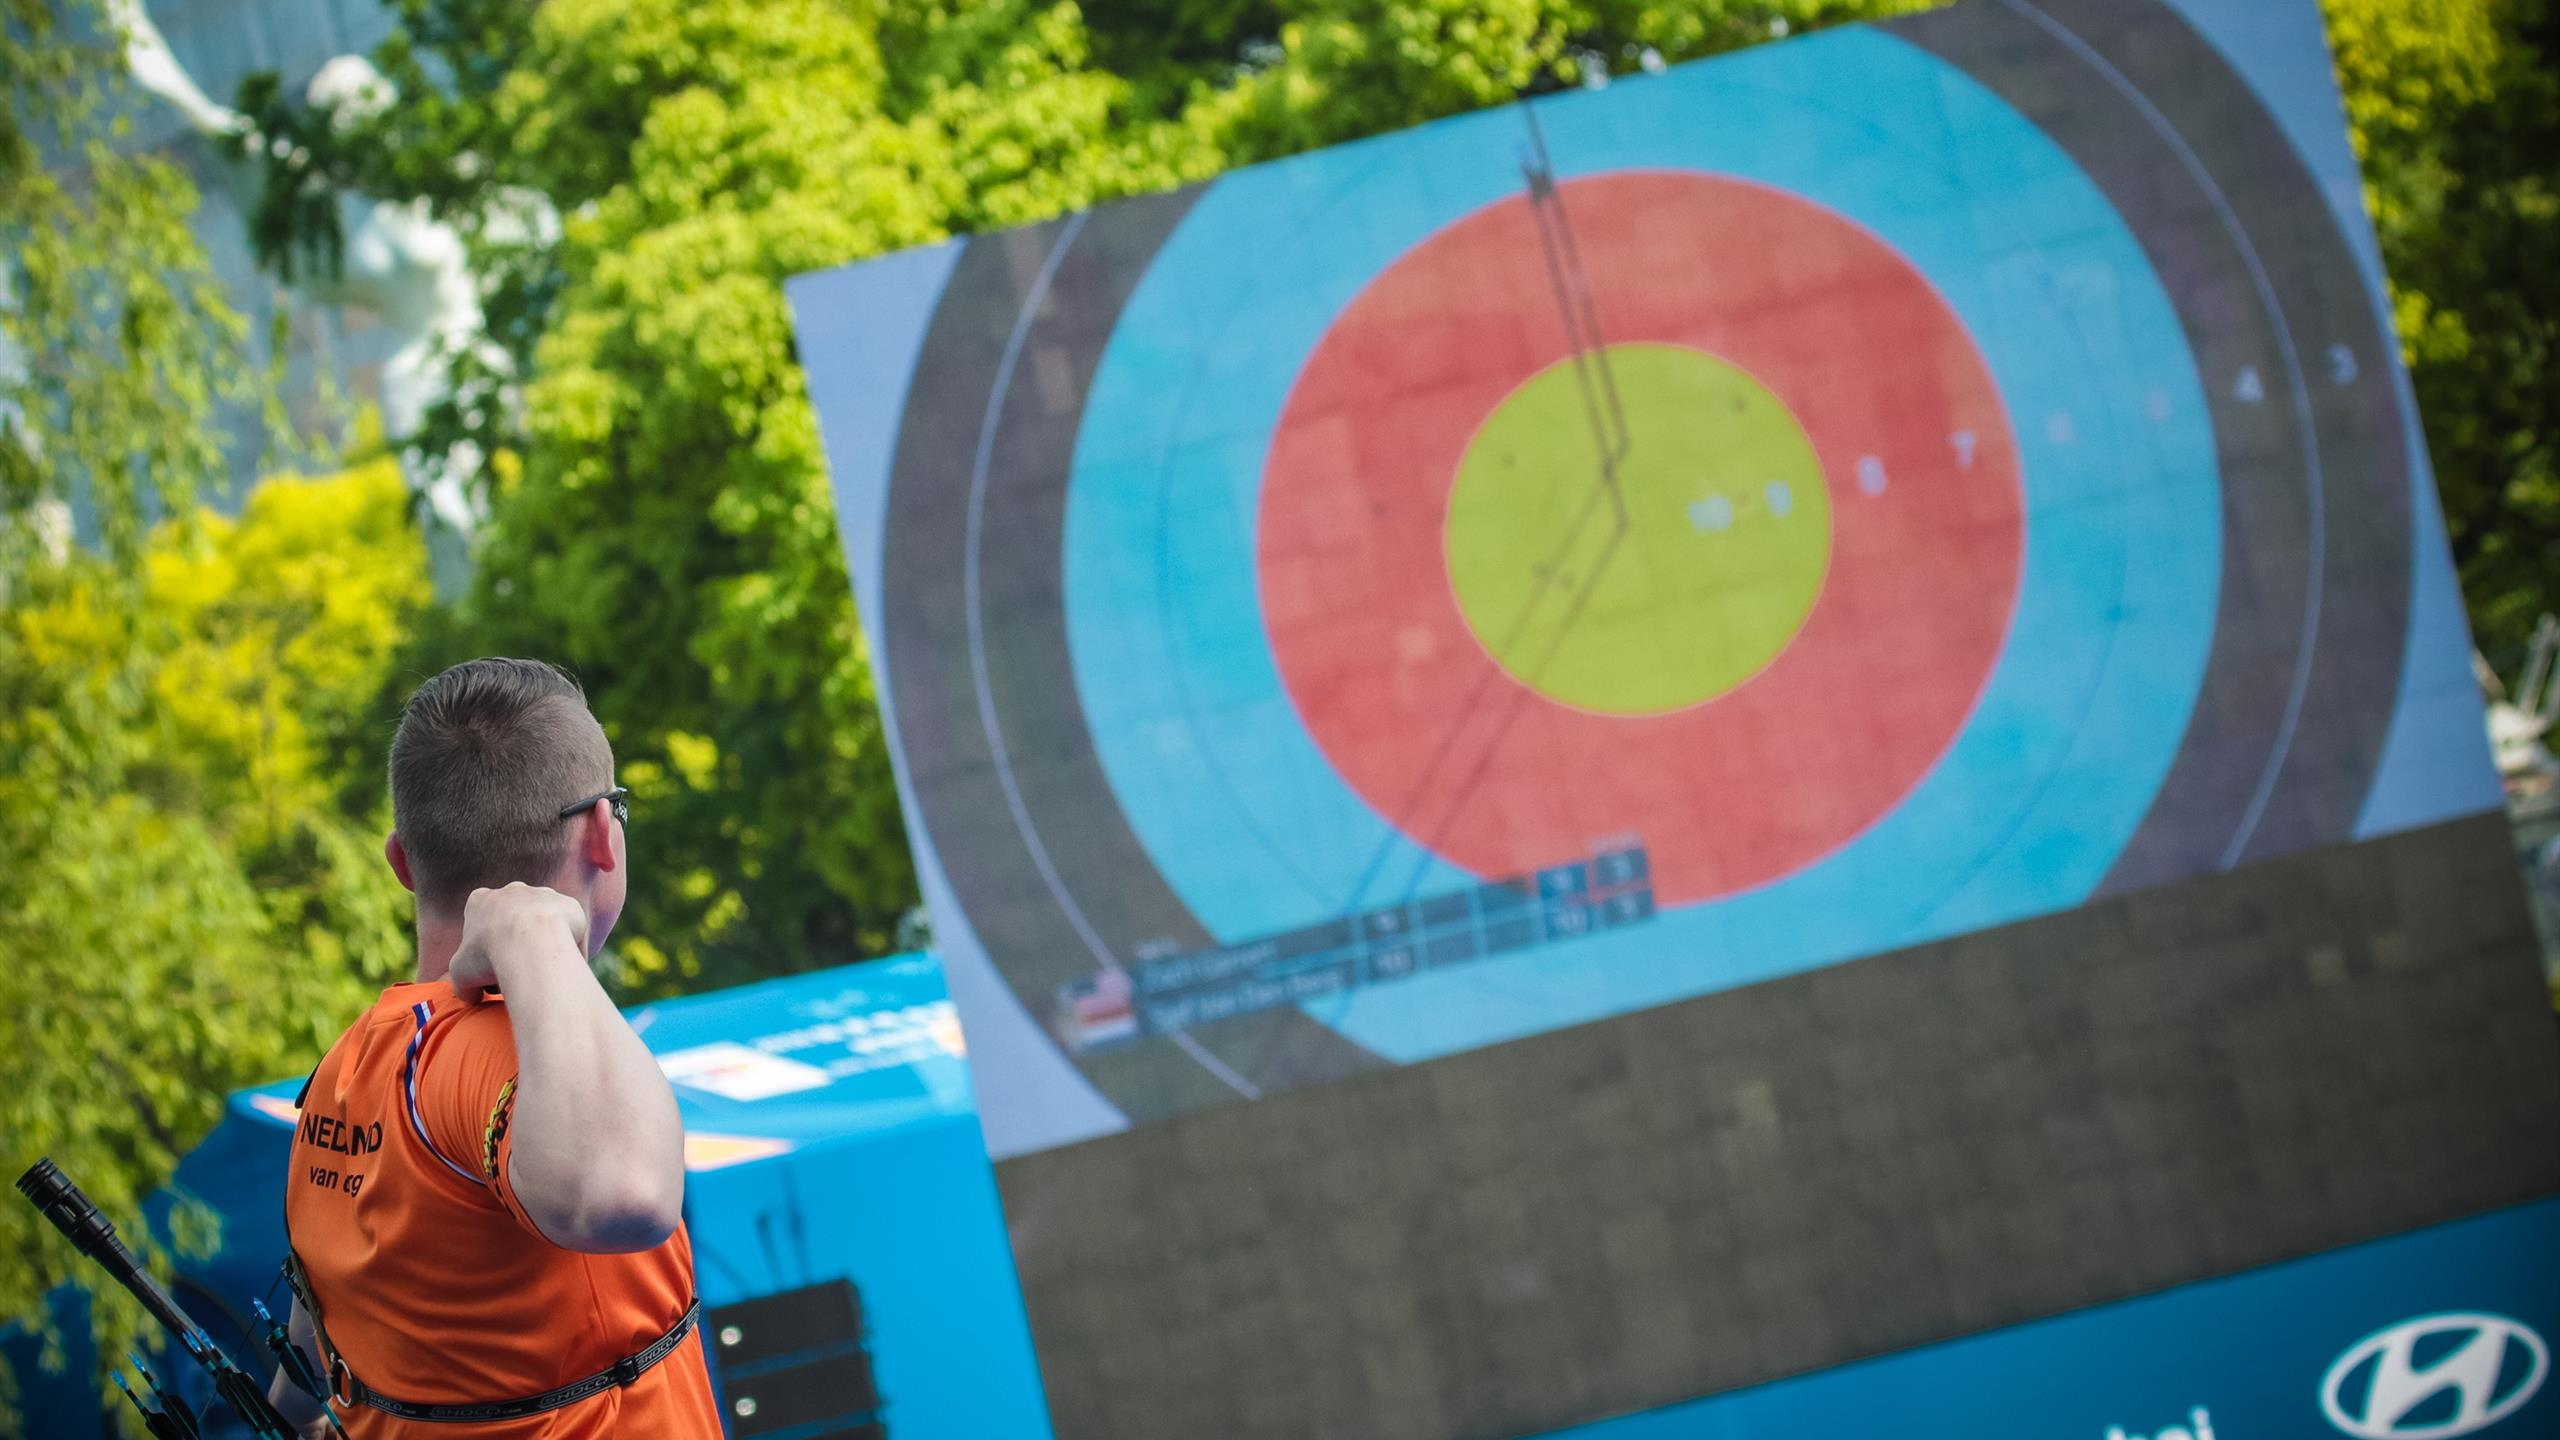 Tokyo Olympics 2020 |  Sjef van den Berg wants to end his career with a medal in shooting